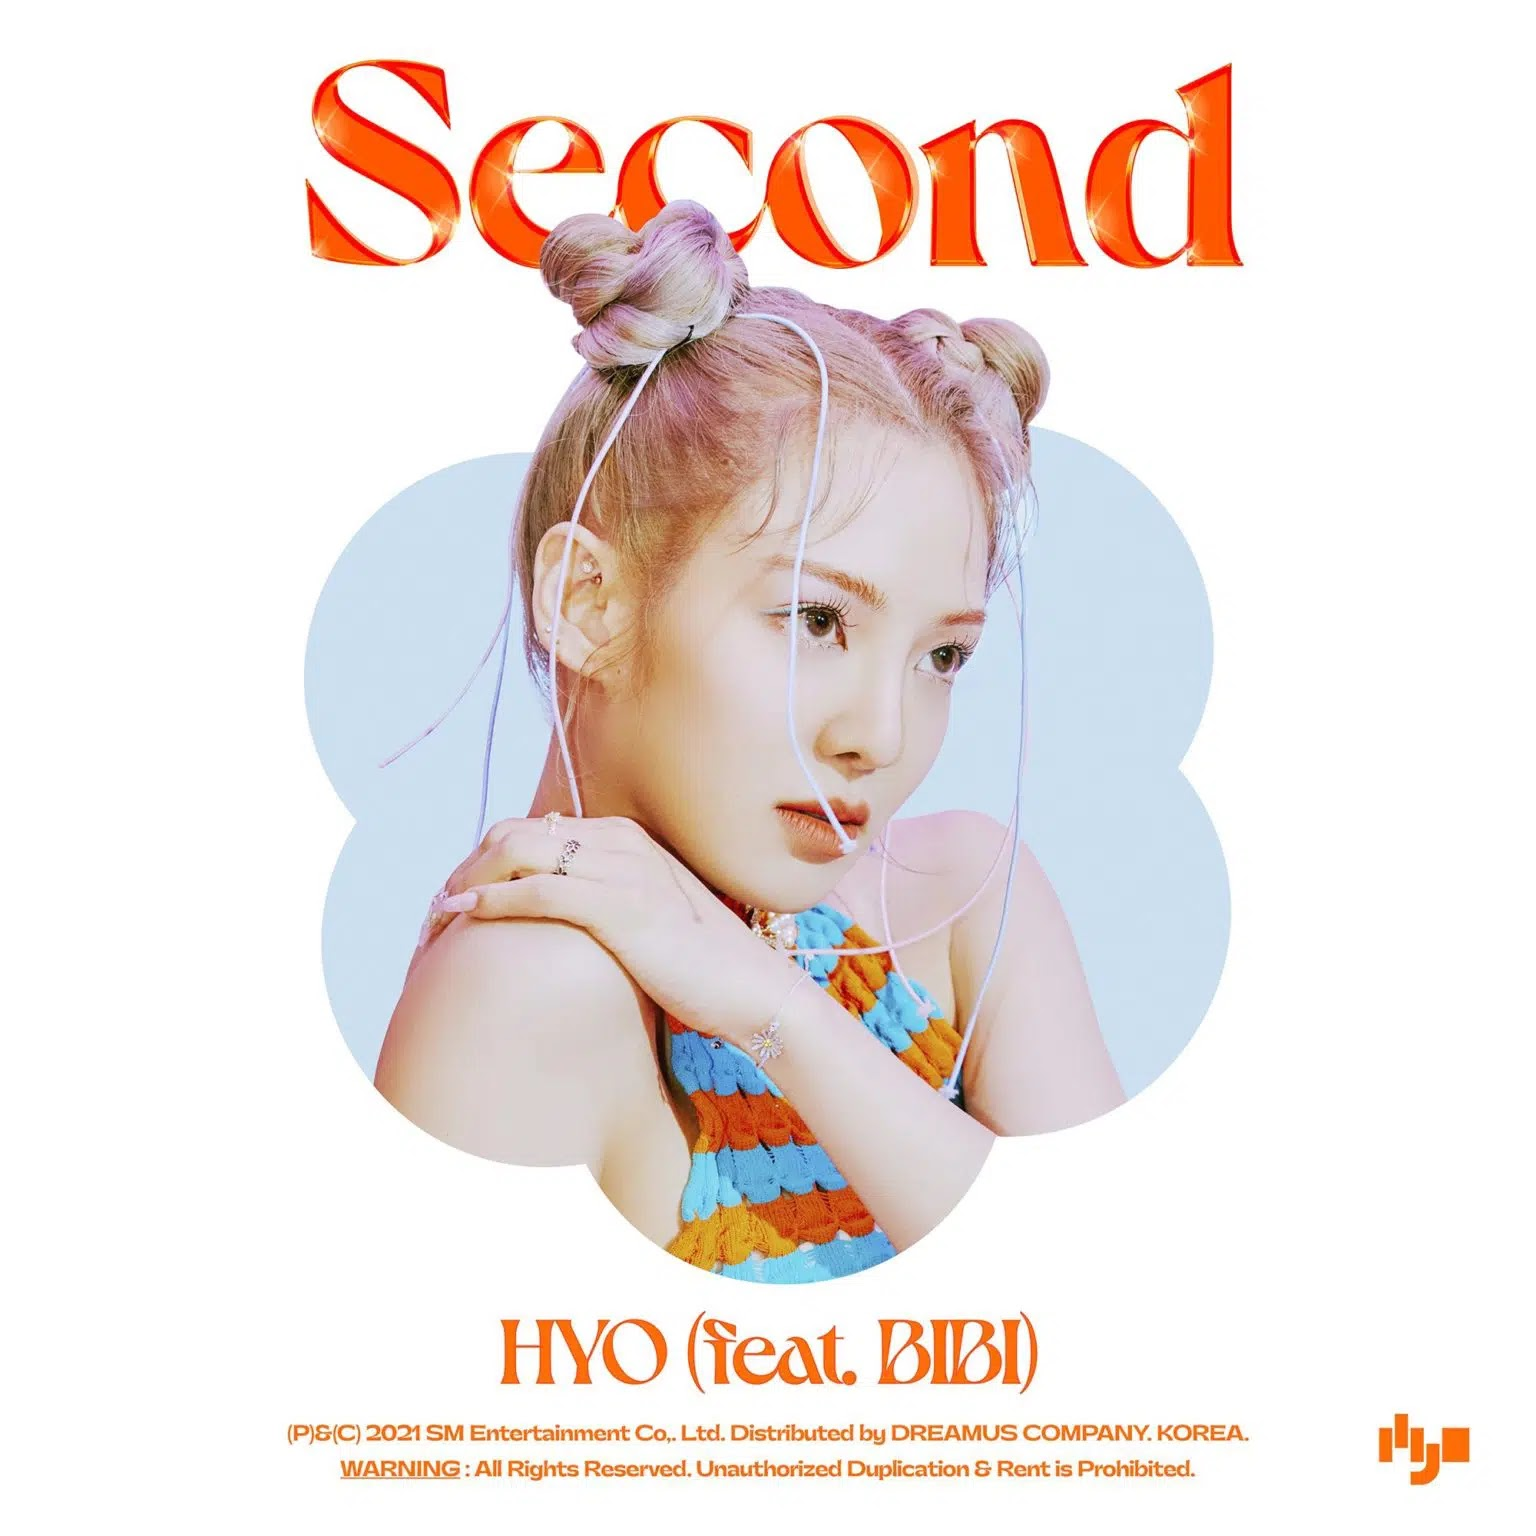 SNSD's Hyoyeon to Collaborates with BIBI on The Newest Single 'Second'